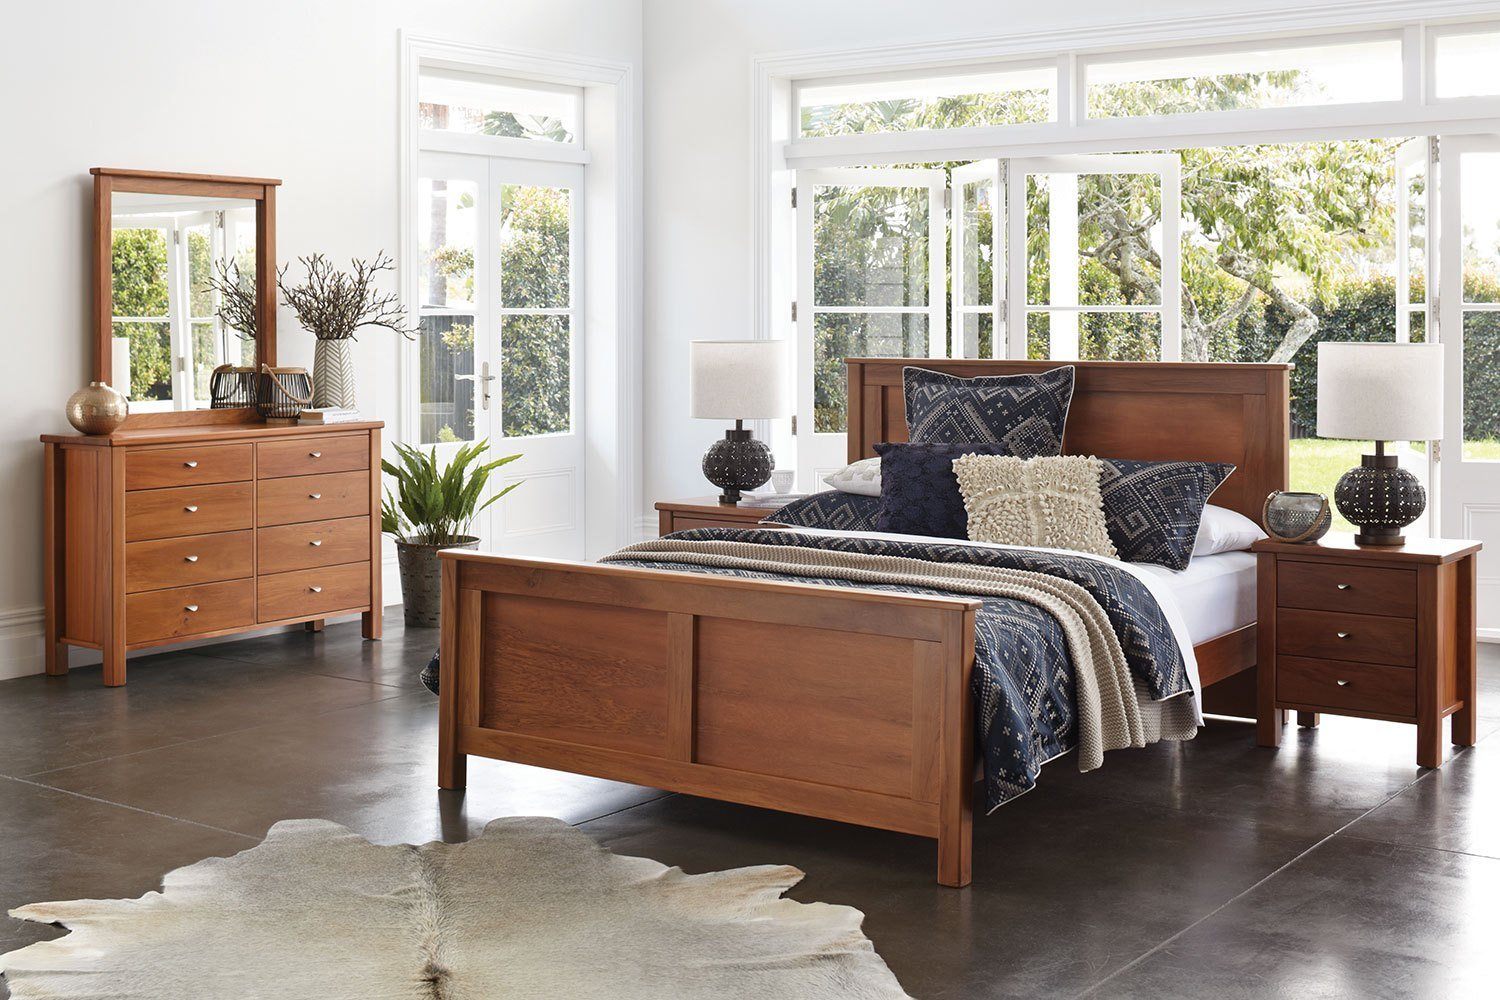 Best Riversdale 4 Piece Bedroom Suite By Marlex Furniture Harvey Norman New Zealand With Pictures